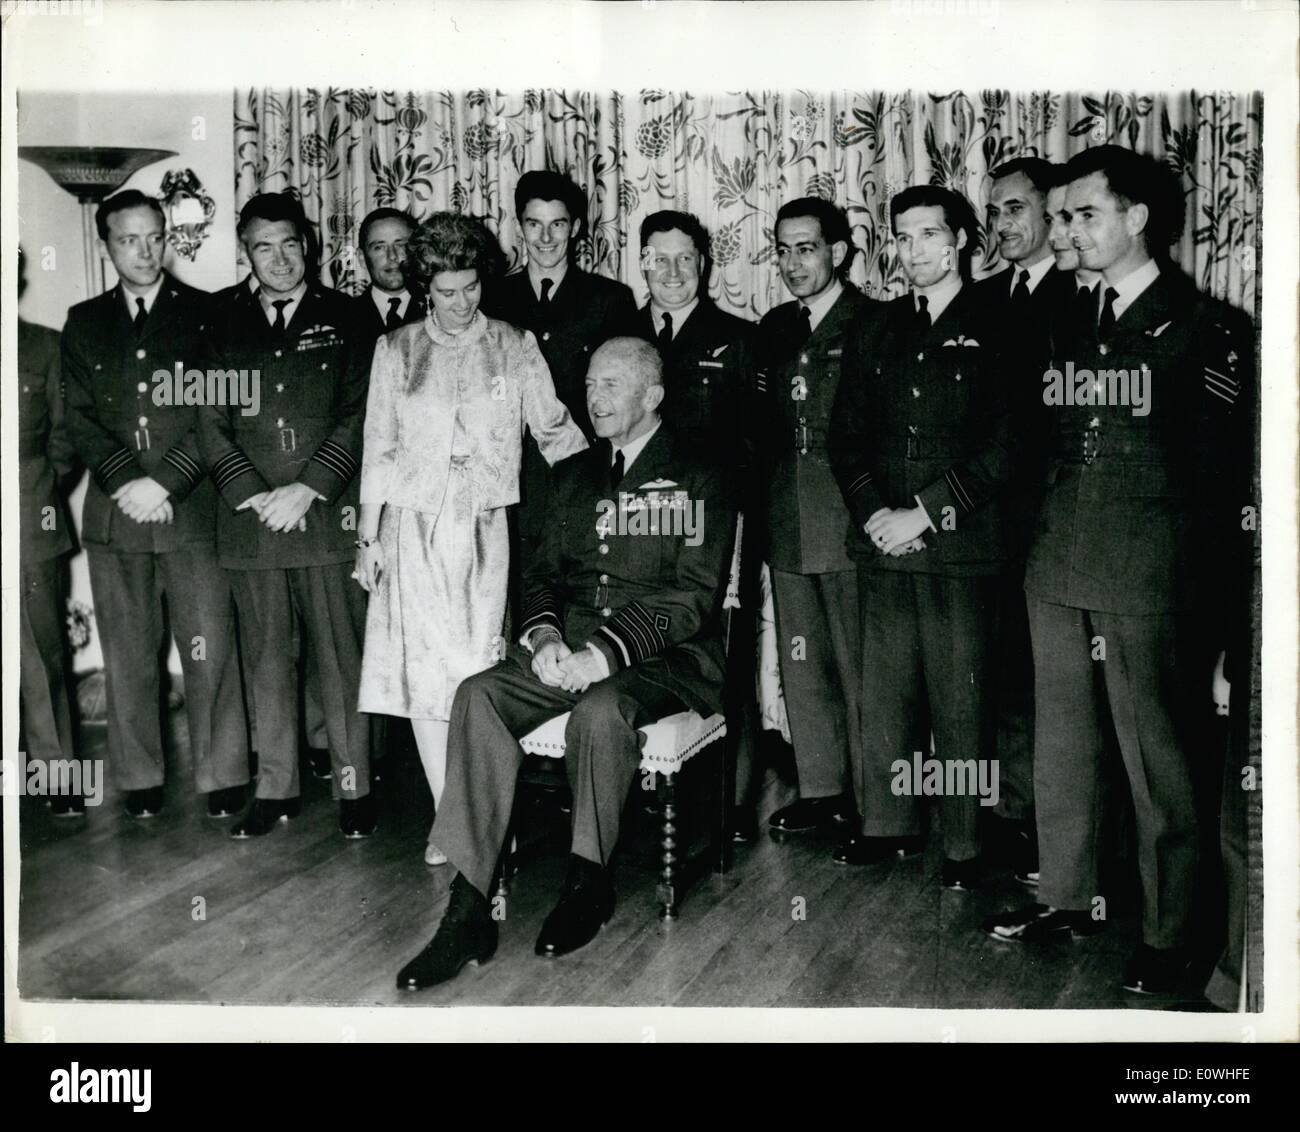 Jan. 01, 1963 - King of Greece tanks British airmen for saving life of young mother. King Paul and Queen Frederika of Greece recently gave a reception at the Tatoi Royal Palace for a number of British airmen who took part in a rescue operation to save the life of a young mother. The woman, who lived on the small island of Kastellorizo was in urgent need of blood and an operation after giving birth to a child. Rough weather made the approach to the island by sea impossible to the Greek authorities flashed an SOS to Cyprus - Stock Image